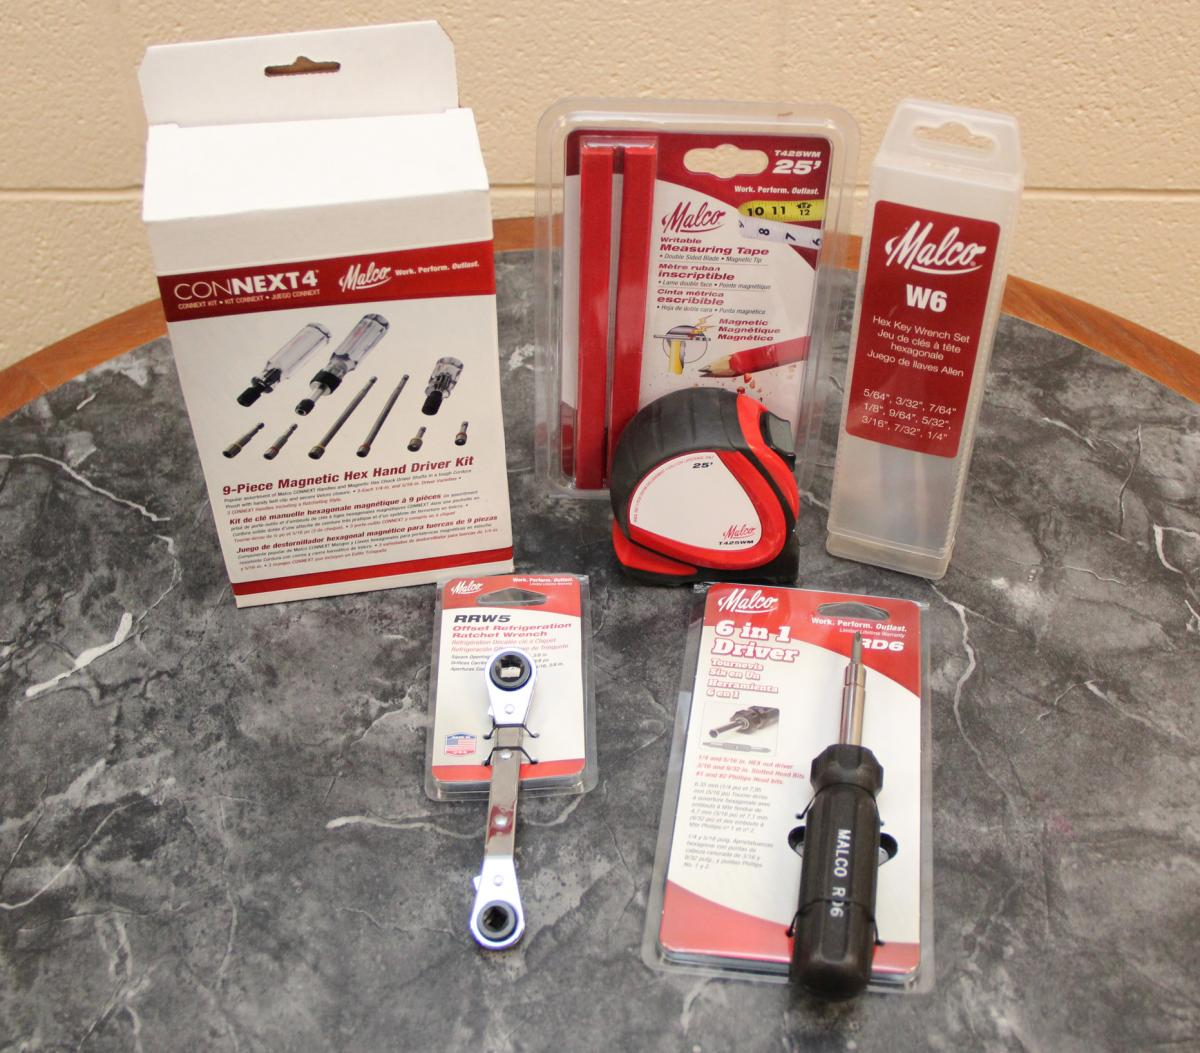 Tools that Malco Products provided to Jeremy Mullins.